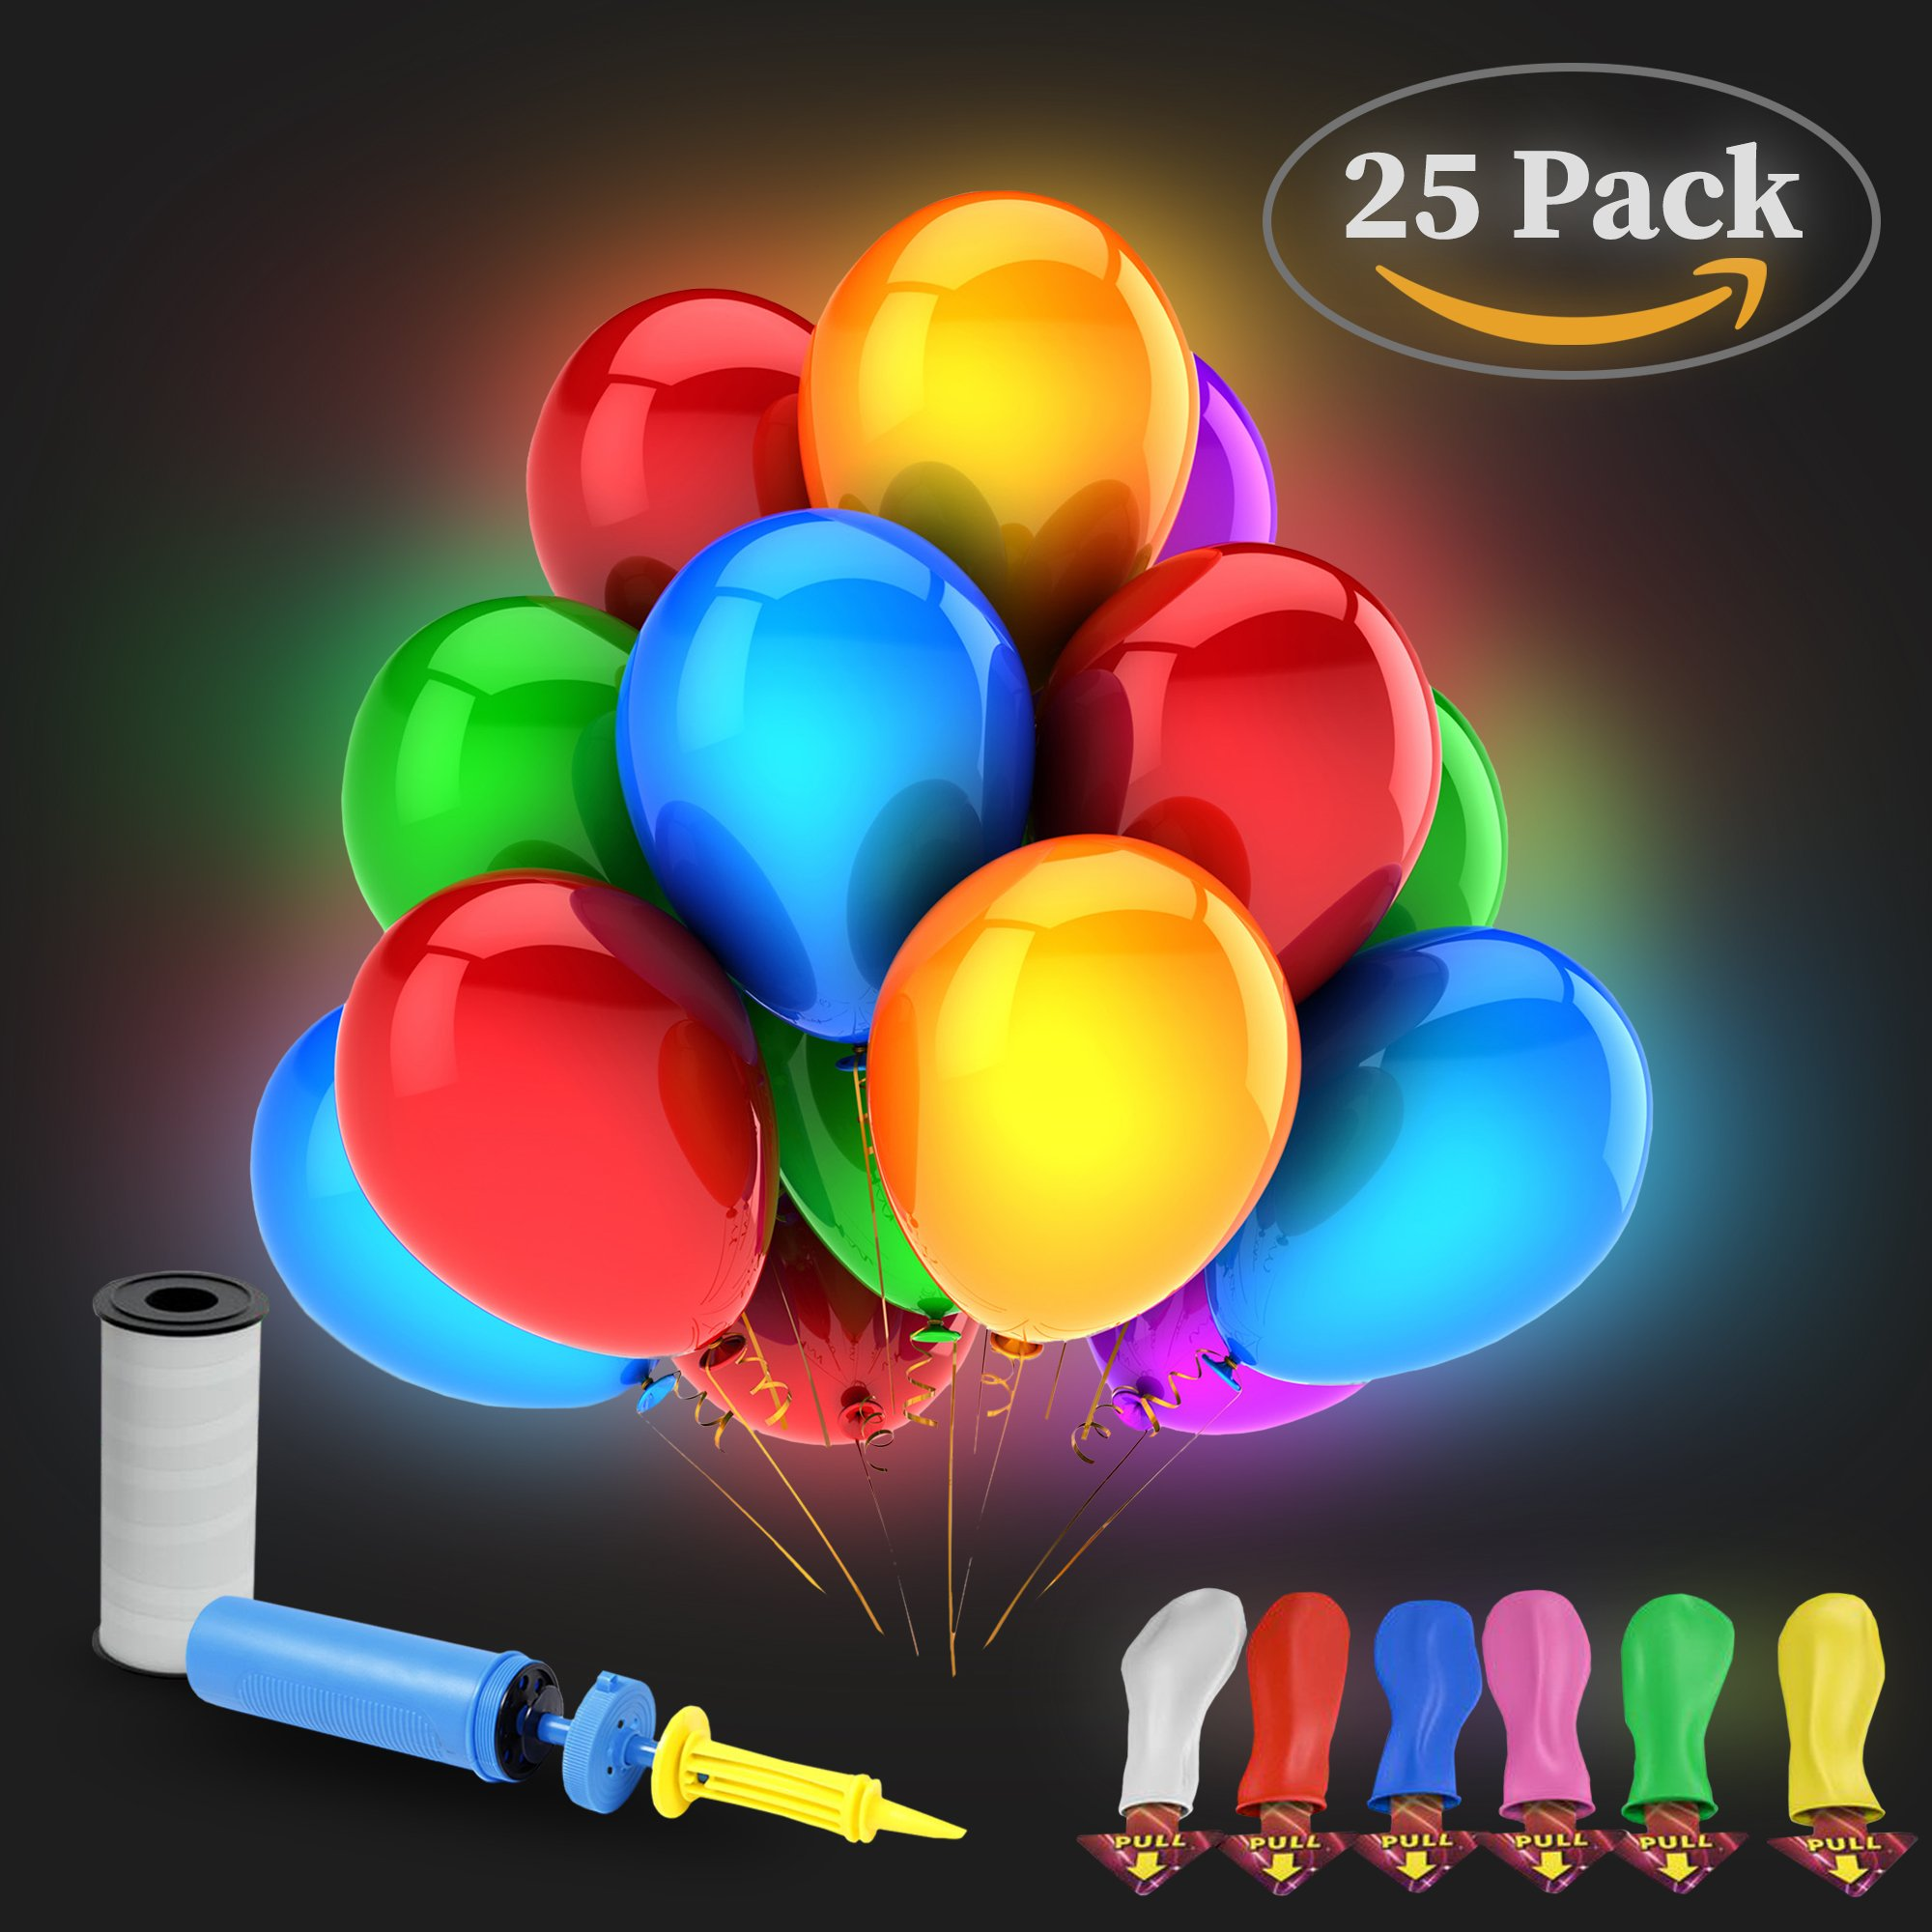 25 pack Led Light up Balloons mixed colors Lasts 12-24 hours Ideal decorations for wedding and Birthday Parties Fillable with Helium or Air (Bonus pump and Ribbon) - by Komaniko